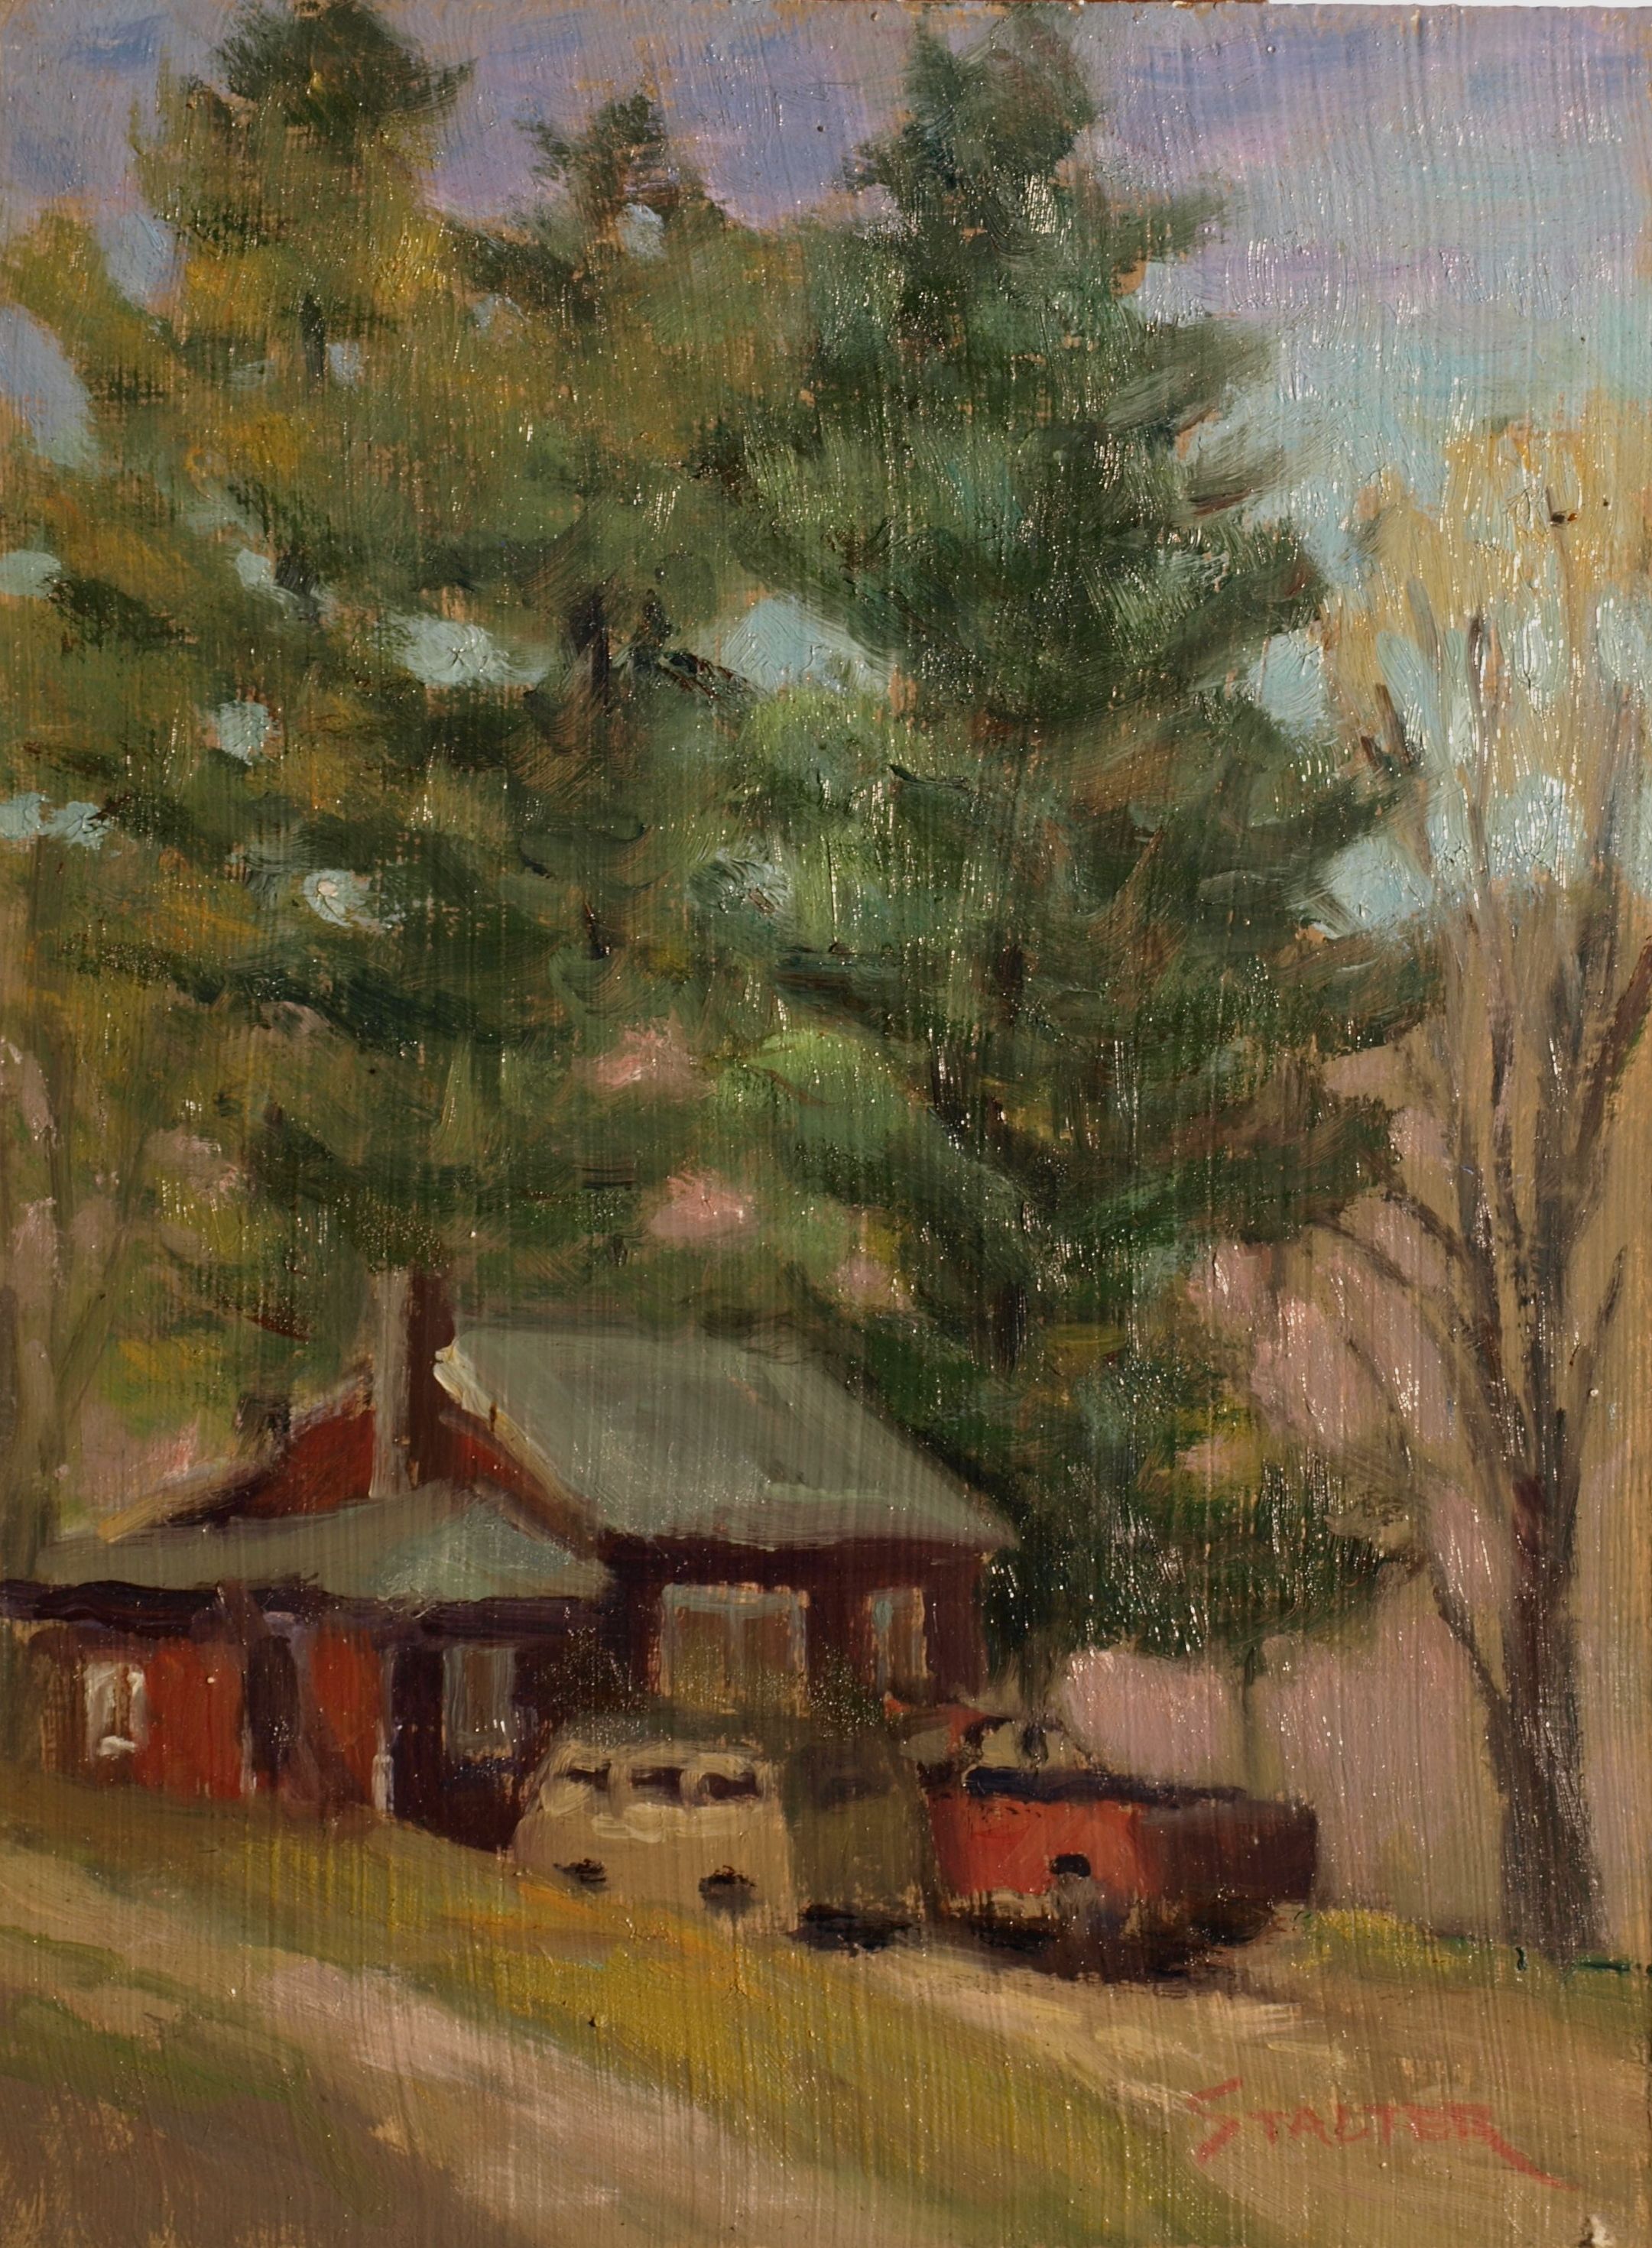 VW Van and Truck, Oil on Panel, 9 x 12 Inches, by Richard Stalter, $225